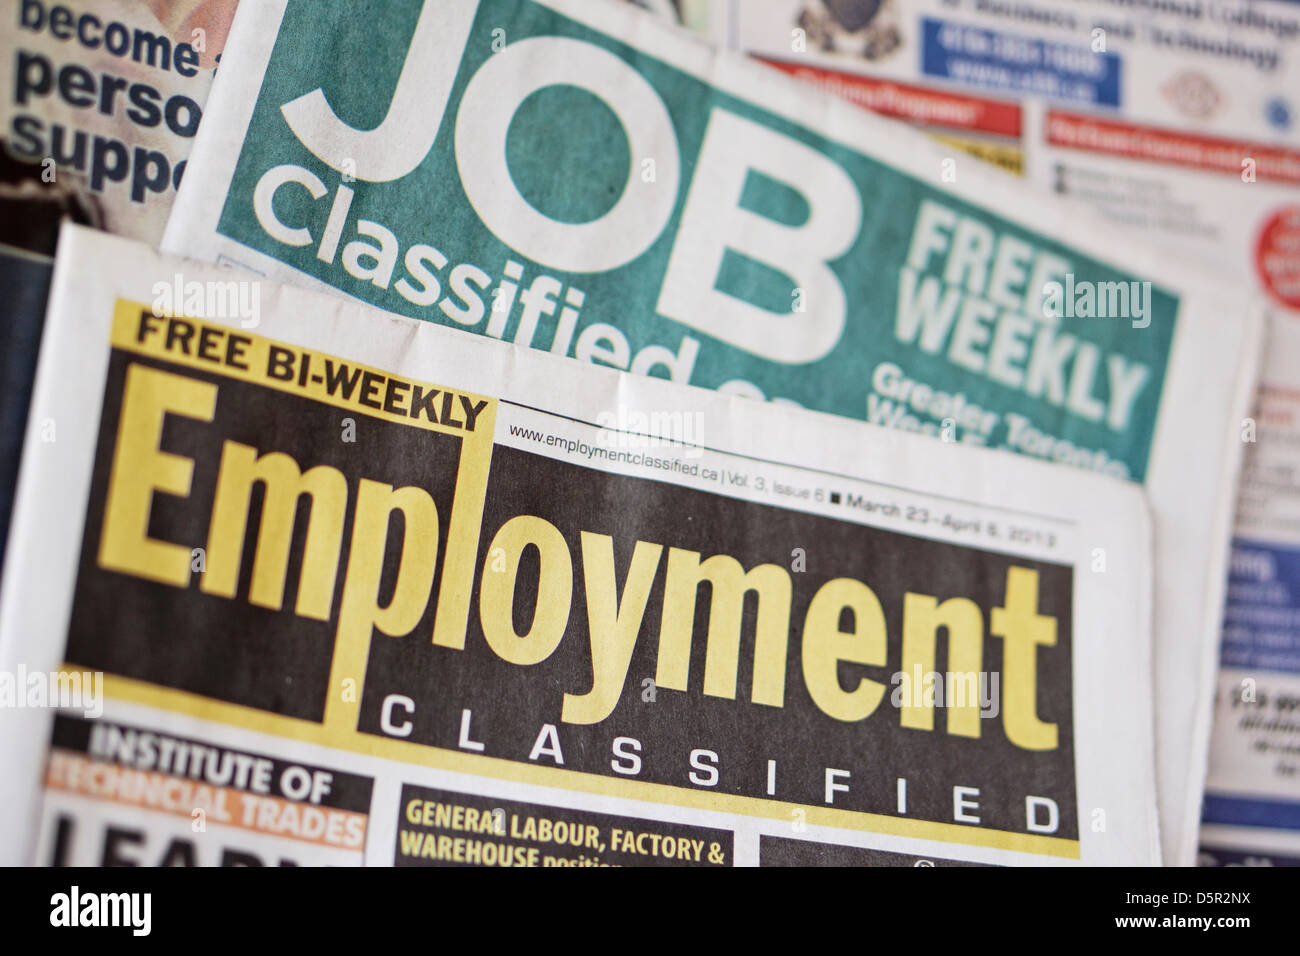 Jobs Employment Classifieds Newspaper, Ontario, Canada - Stock Image